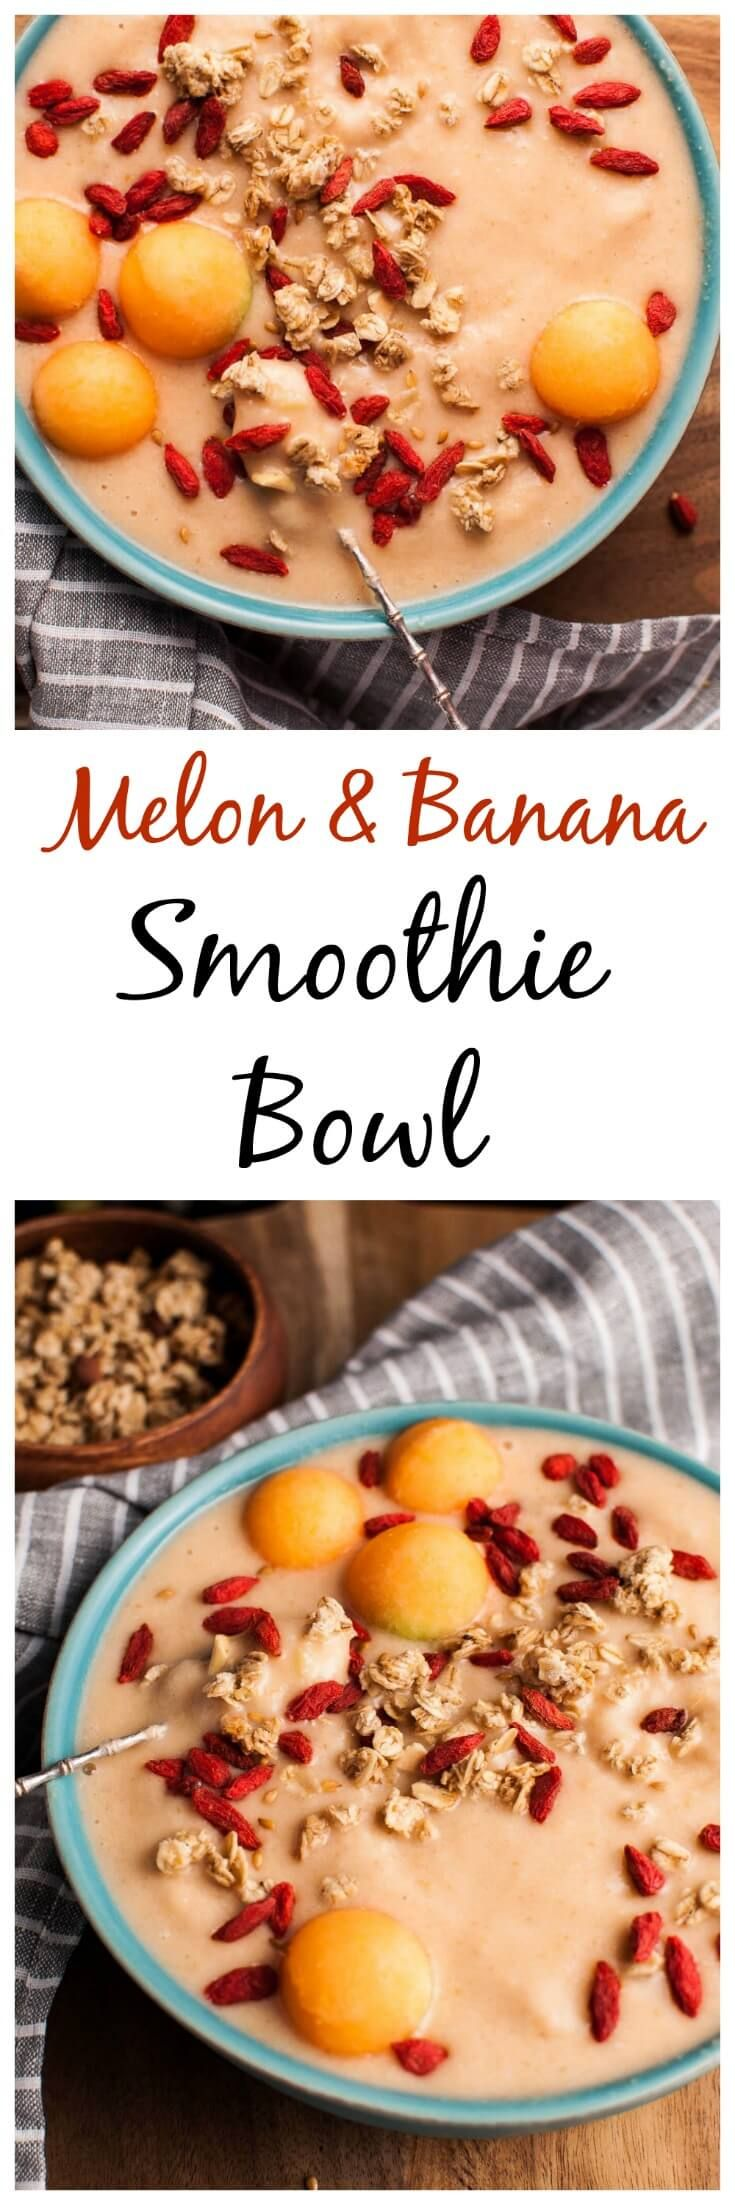 Make your breakfast better with this healthy and refreshing cantaloupe and banana smoothie bowl!